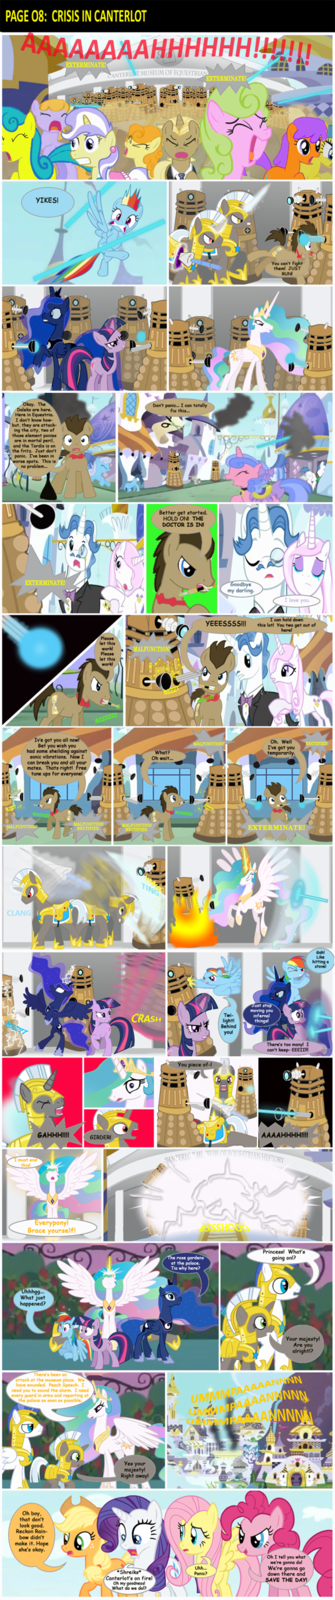 doctor_whooves__elder_page_08_by_shwiggityshwah-d4hzunk_resized.png